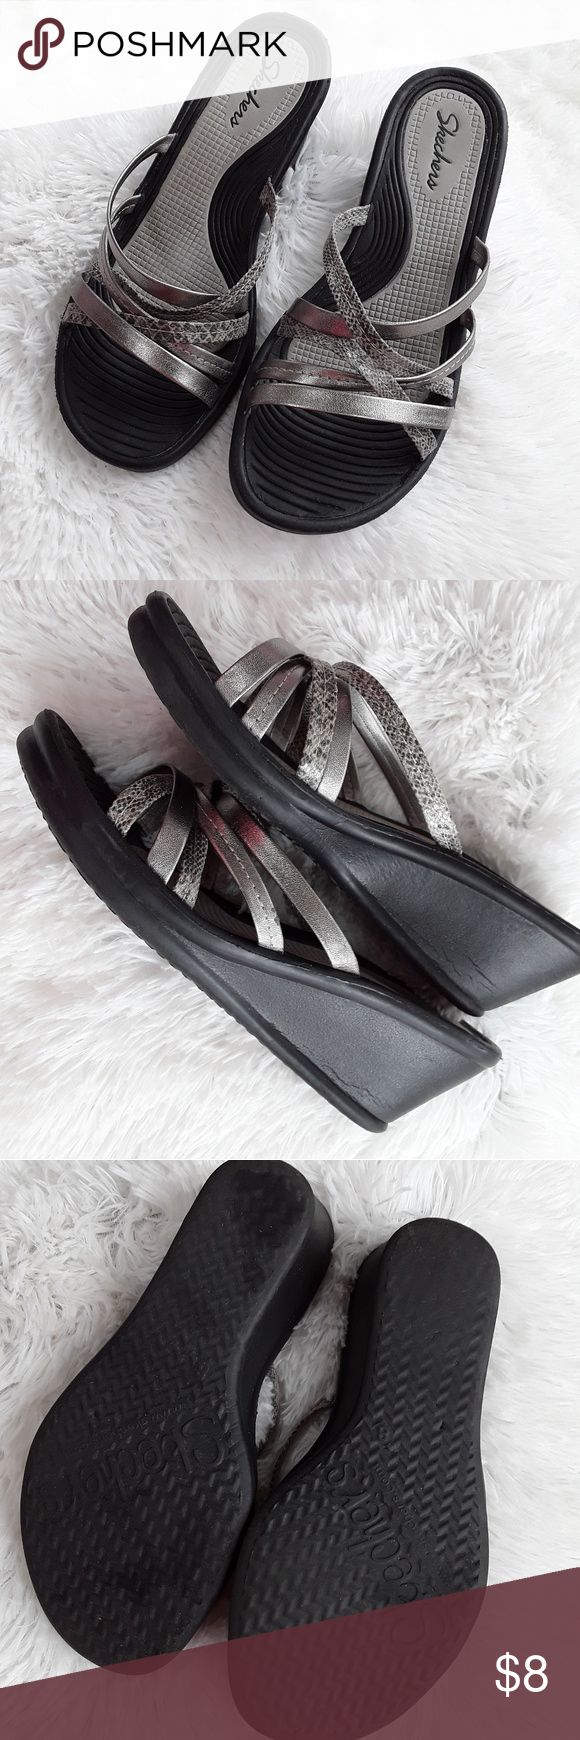 Skechers Wedge Sandals Cushy soft rubber wedge with silver and snakeskin look straps. Size 8 fits wide. Really comfortable. Wear on heels but still some life left in them. Skechers Shoes Wedges